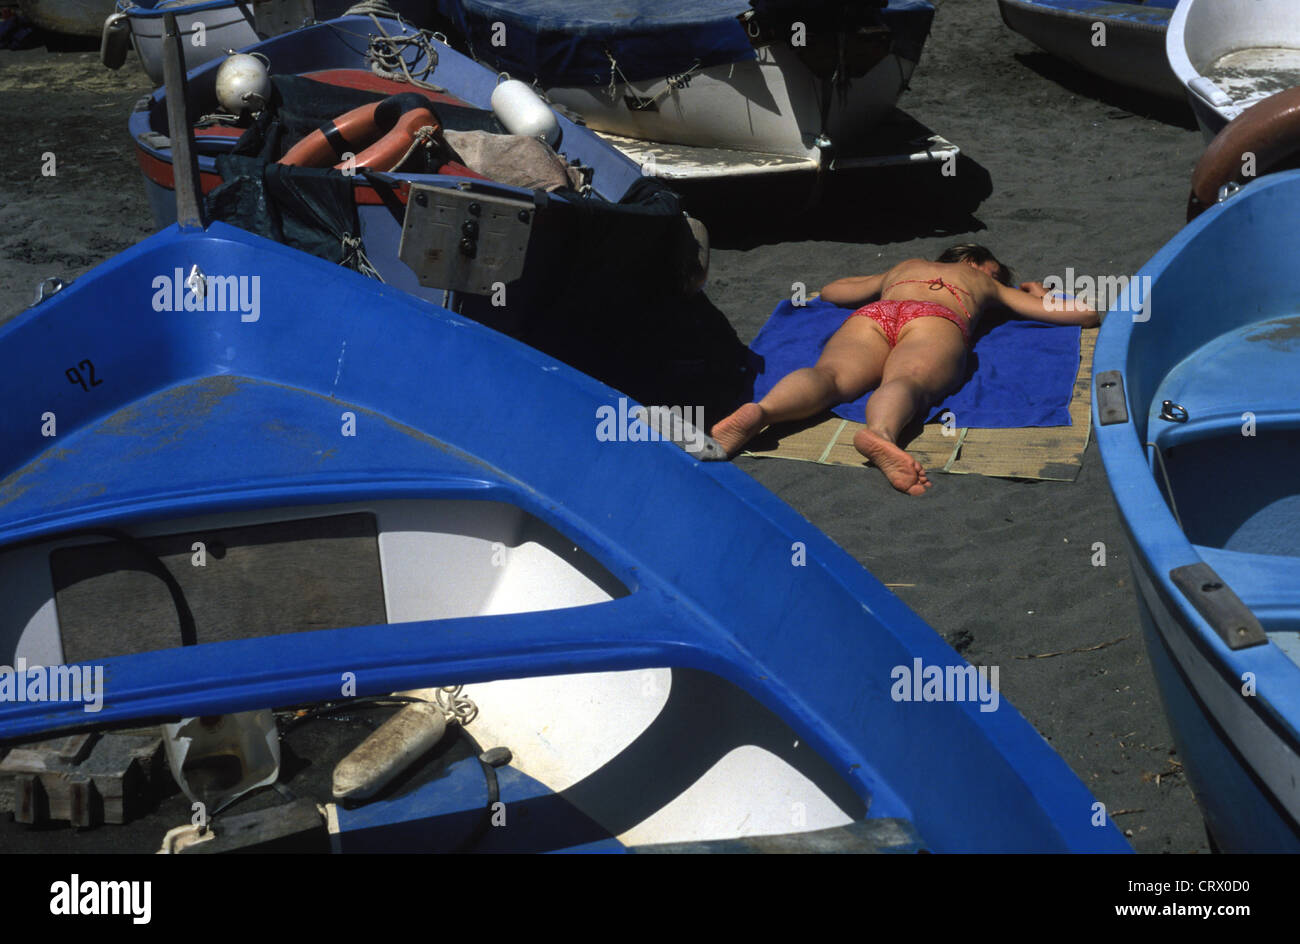 Woman lying in a confined space between boats - Stock Image